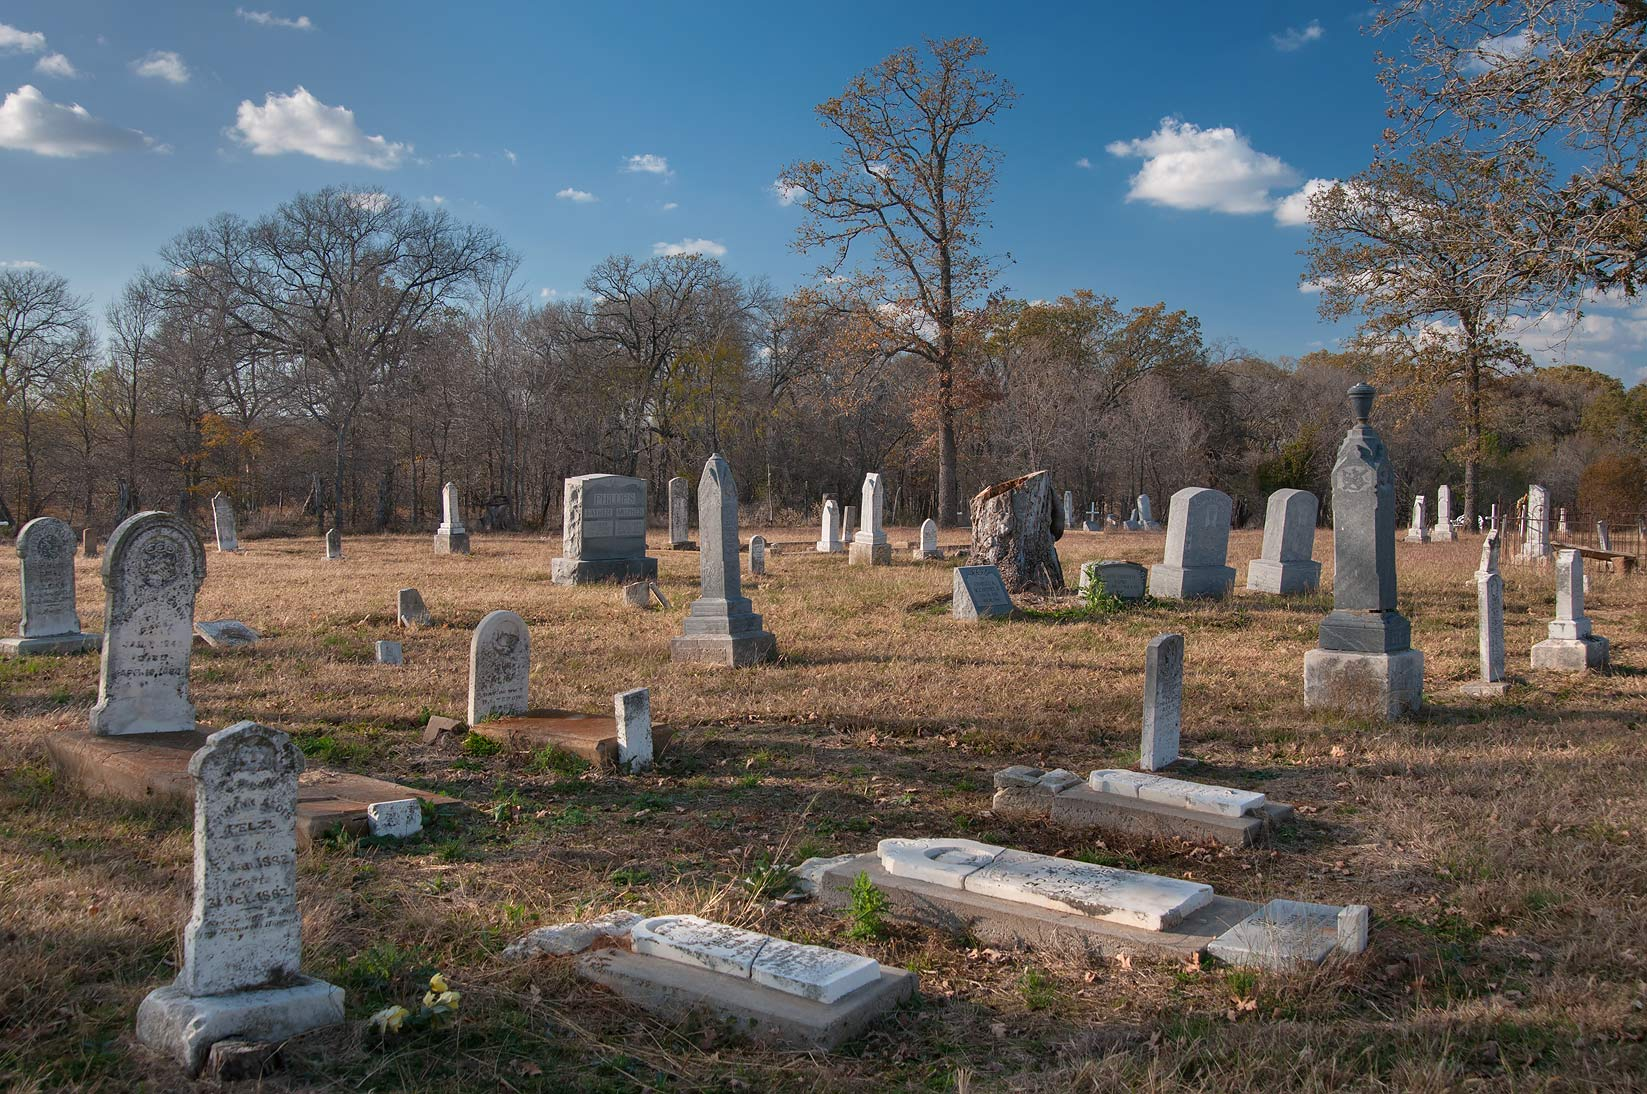 Murray Cemetery at Rd. FM 487 north from Rockdale. Texas